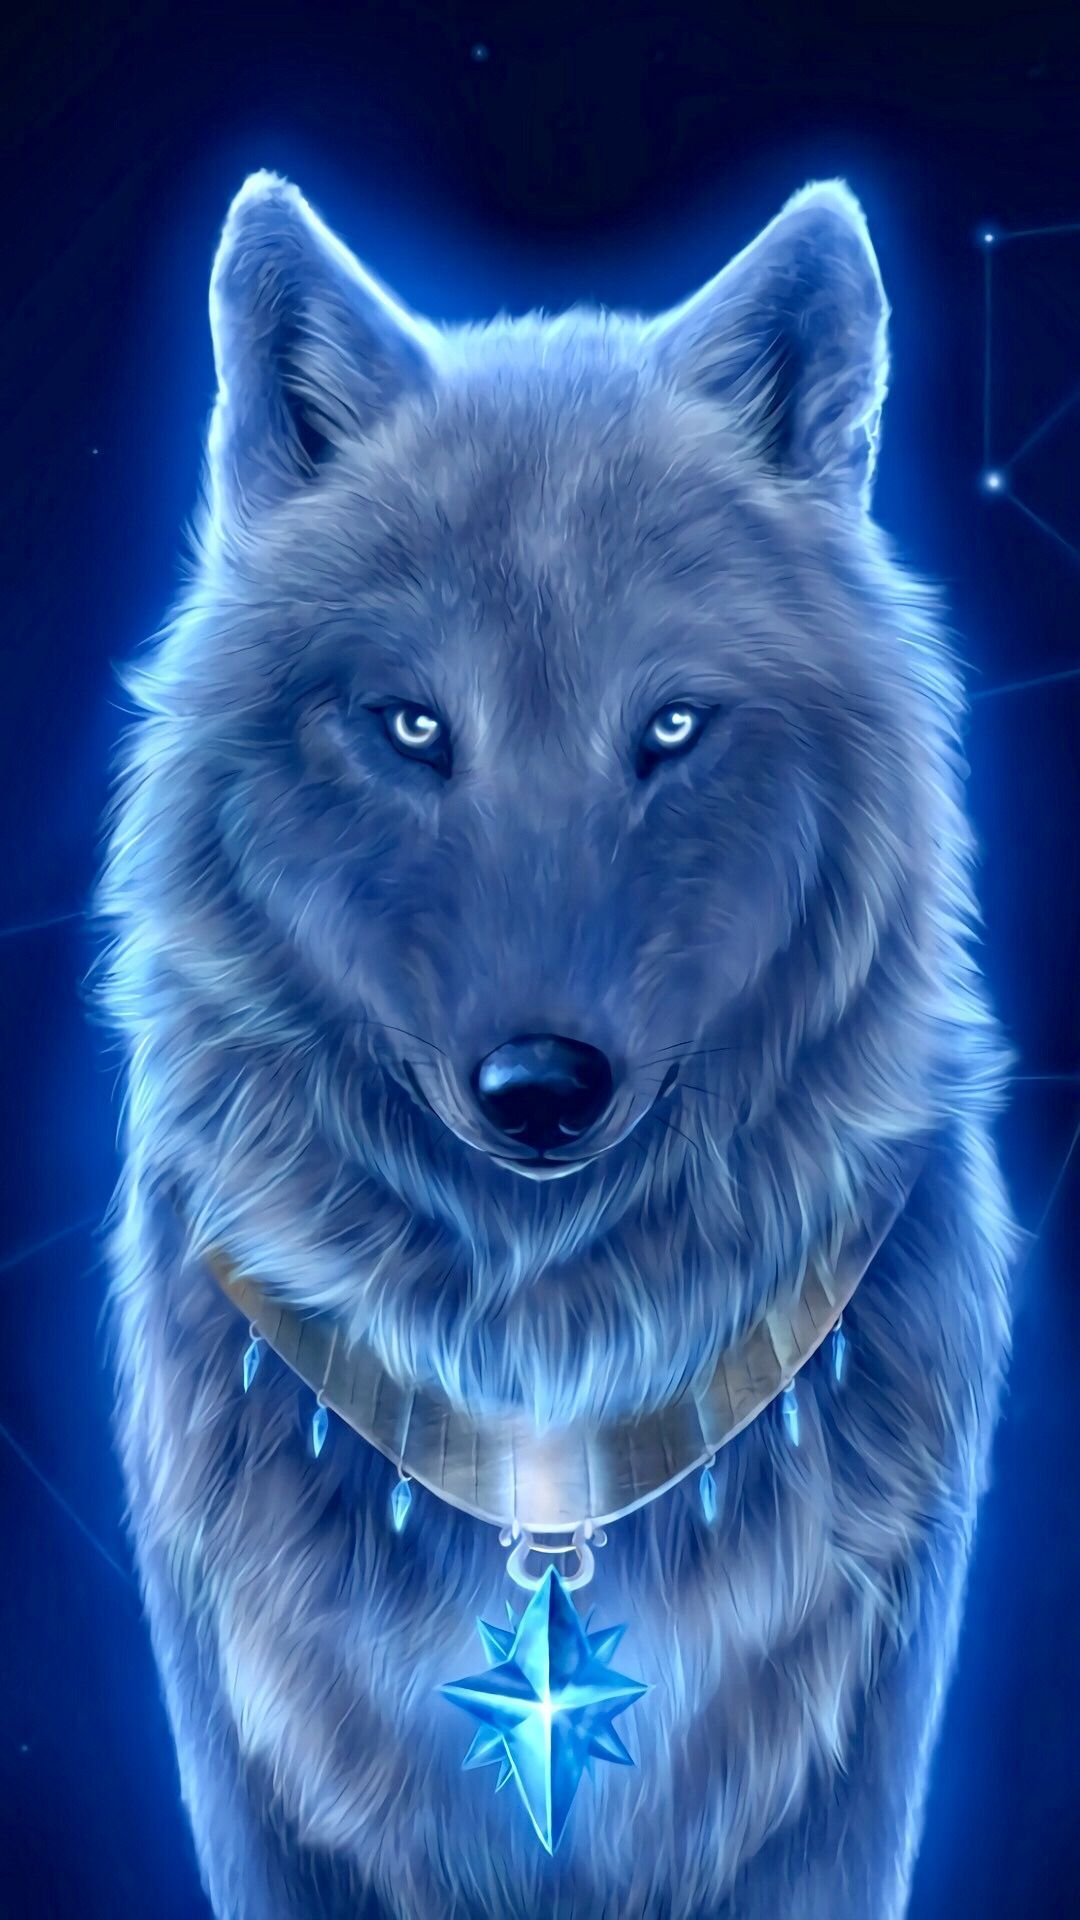 Amazing Cool Iphone Backgrounds Backgrounds Cool Wolf Wallpaper Wolf Art Fantasy Galaxy Wolf